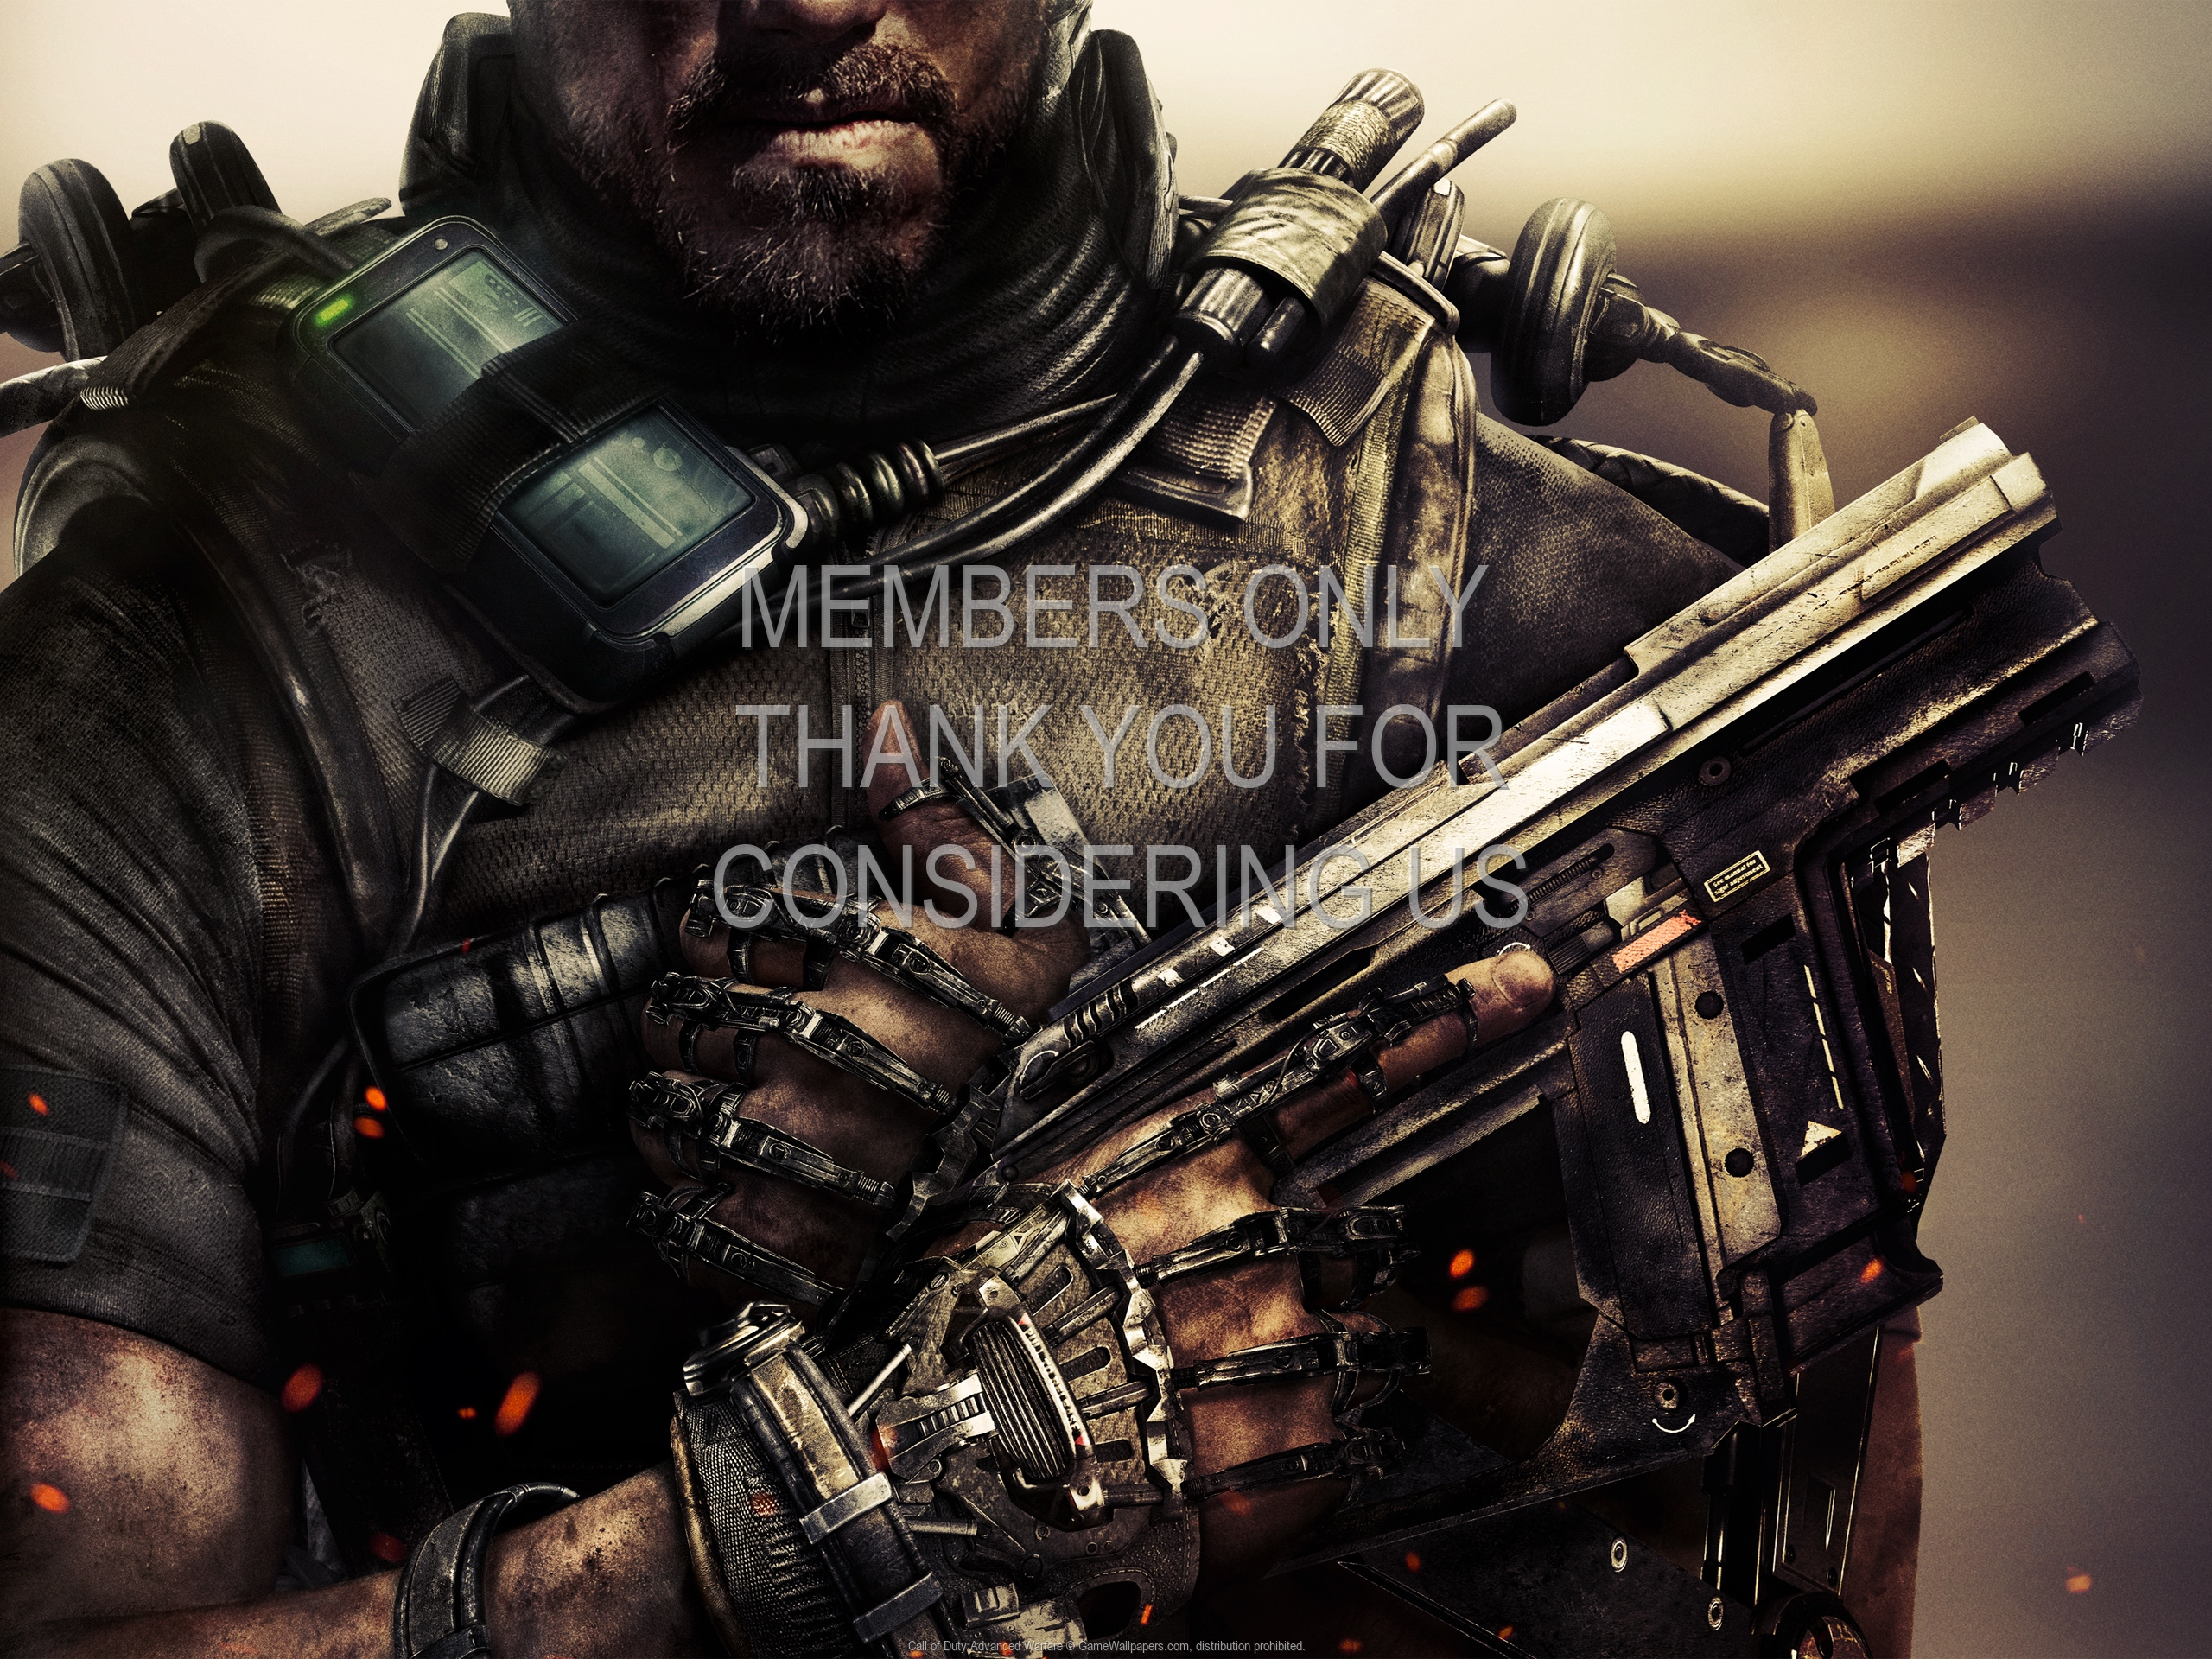 Call of Duty: Advanced Warfare 1920x1080 Mobile wallpaper or background 03